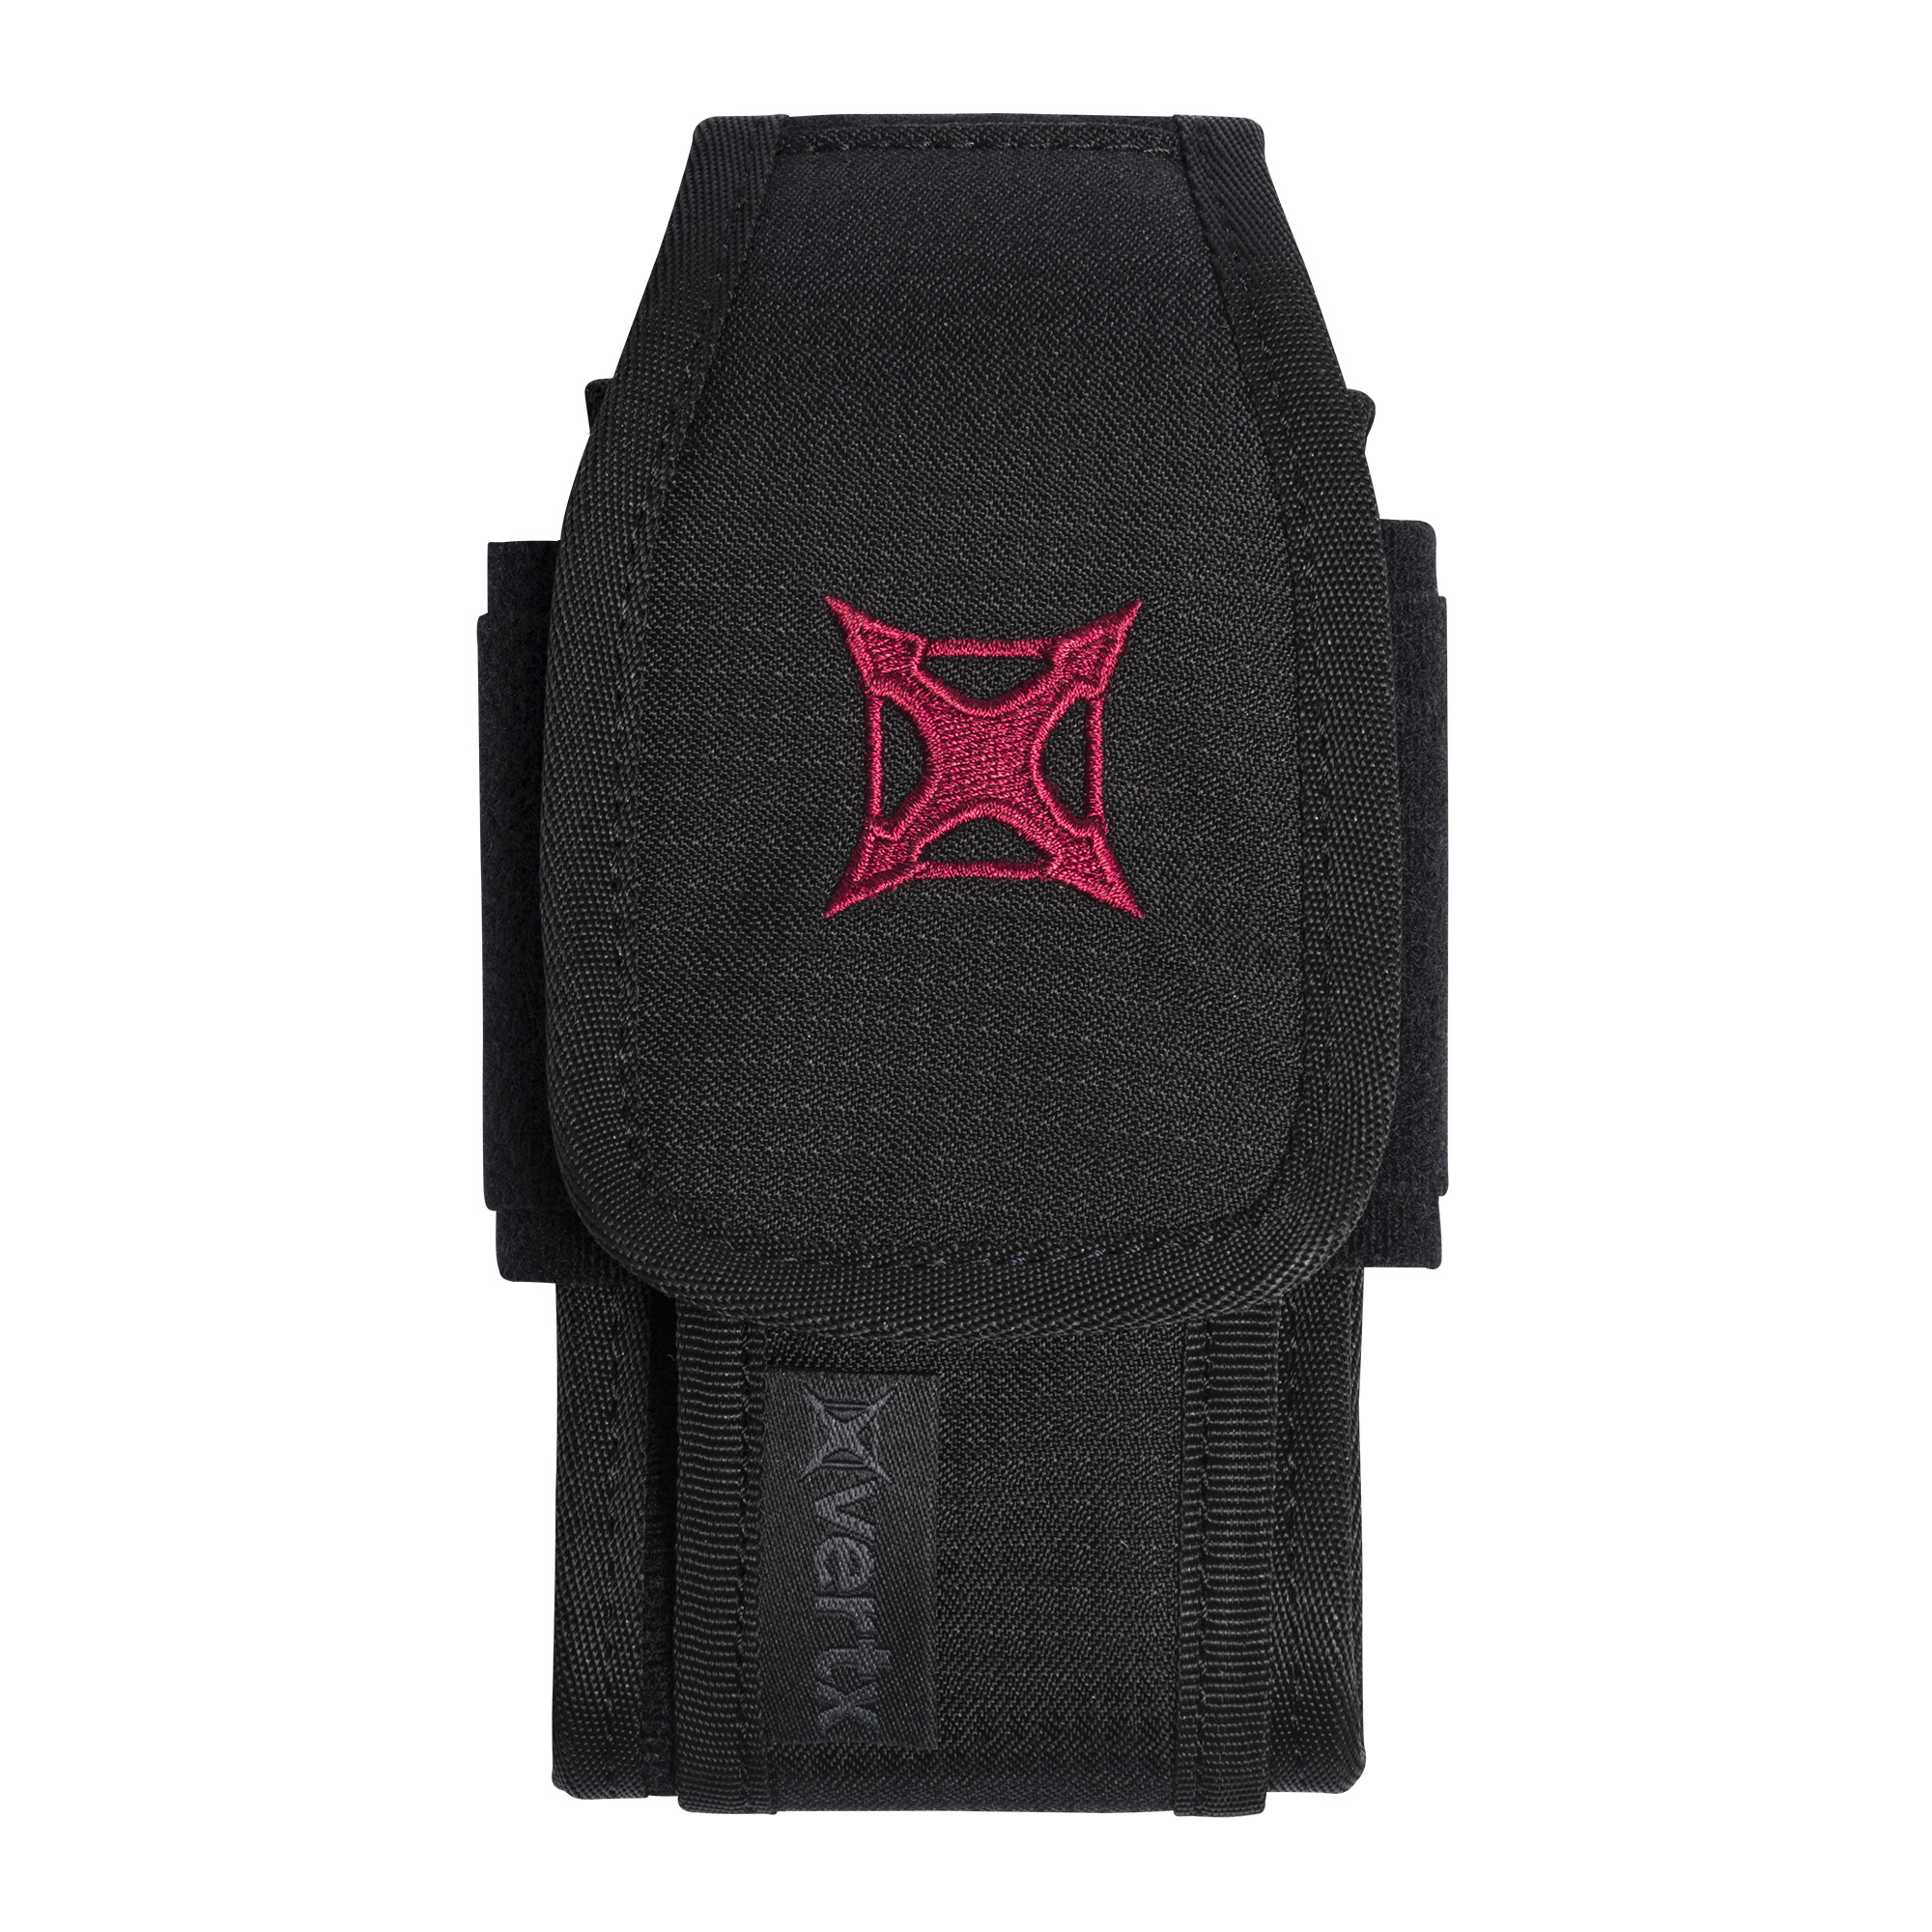 The Tactigami Tech and Multi-Tool Pouch securely stows inside any of the Vertx bags or can be used solo to protect your handheld devices from the elements.